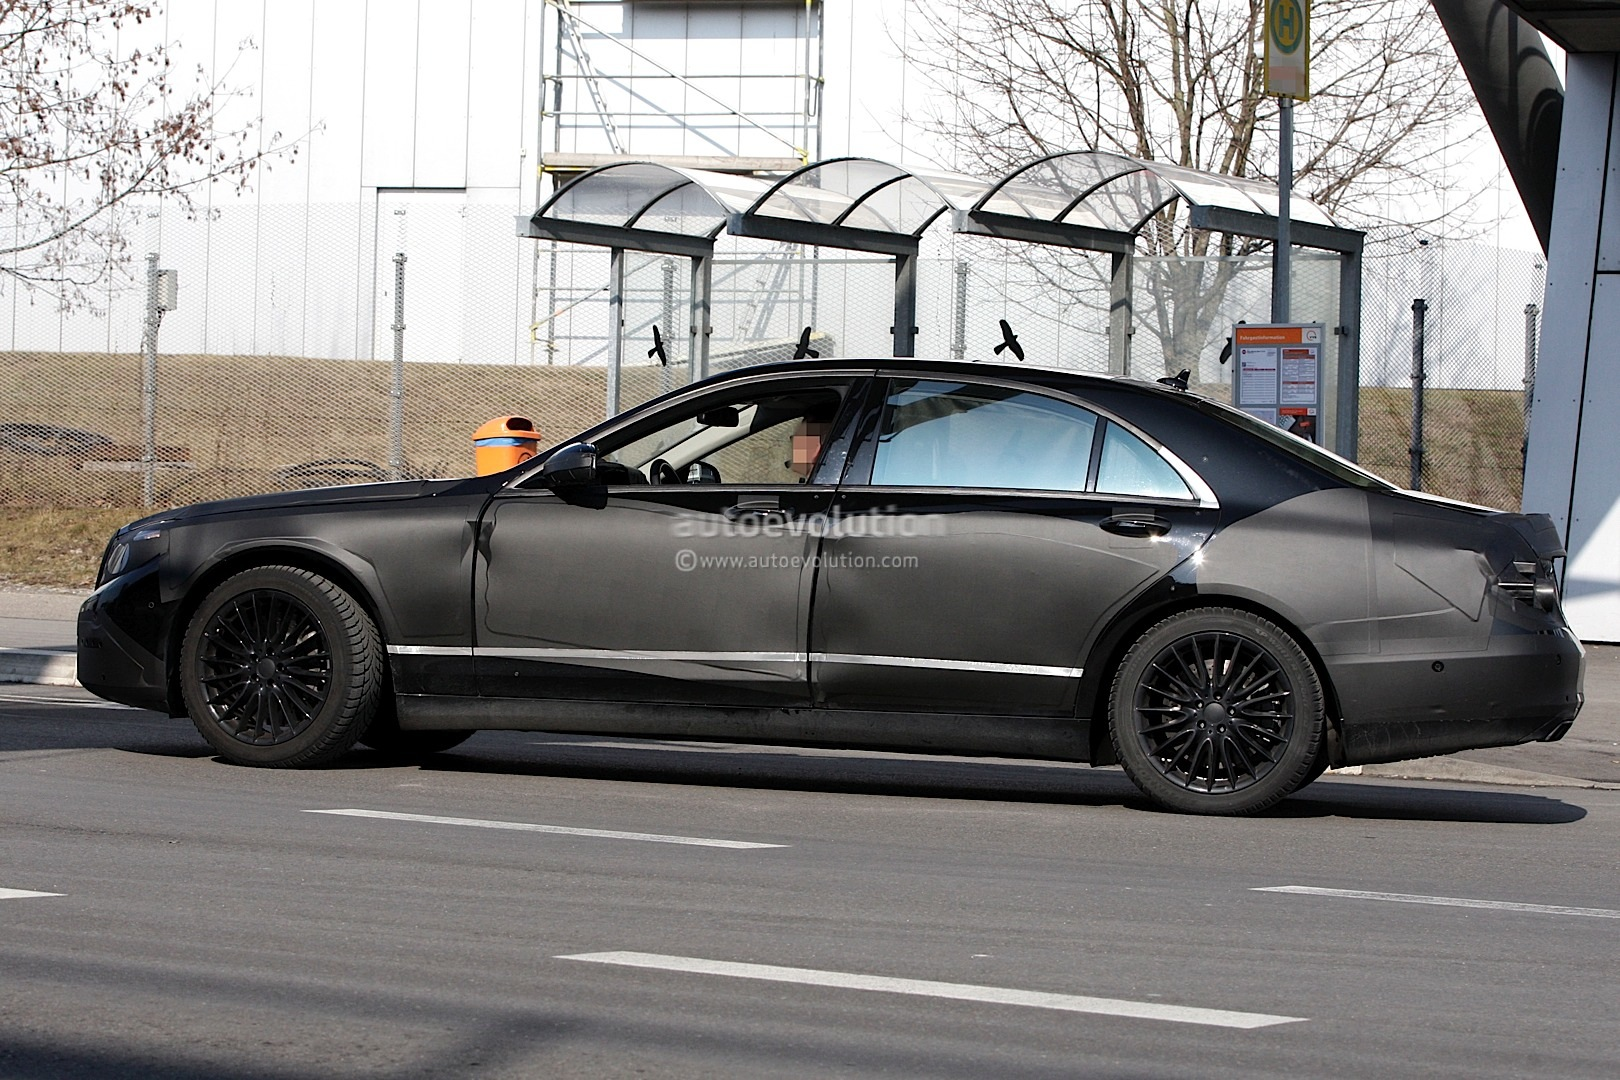 spyshots 2013 mercedes benz s class autoevolution. Black Bedroom Furniture Sets. Home Design Ideas